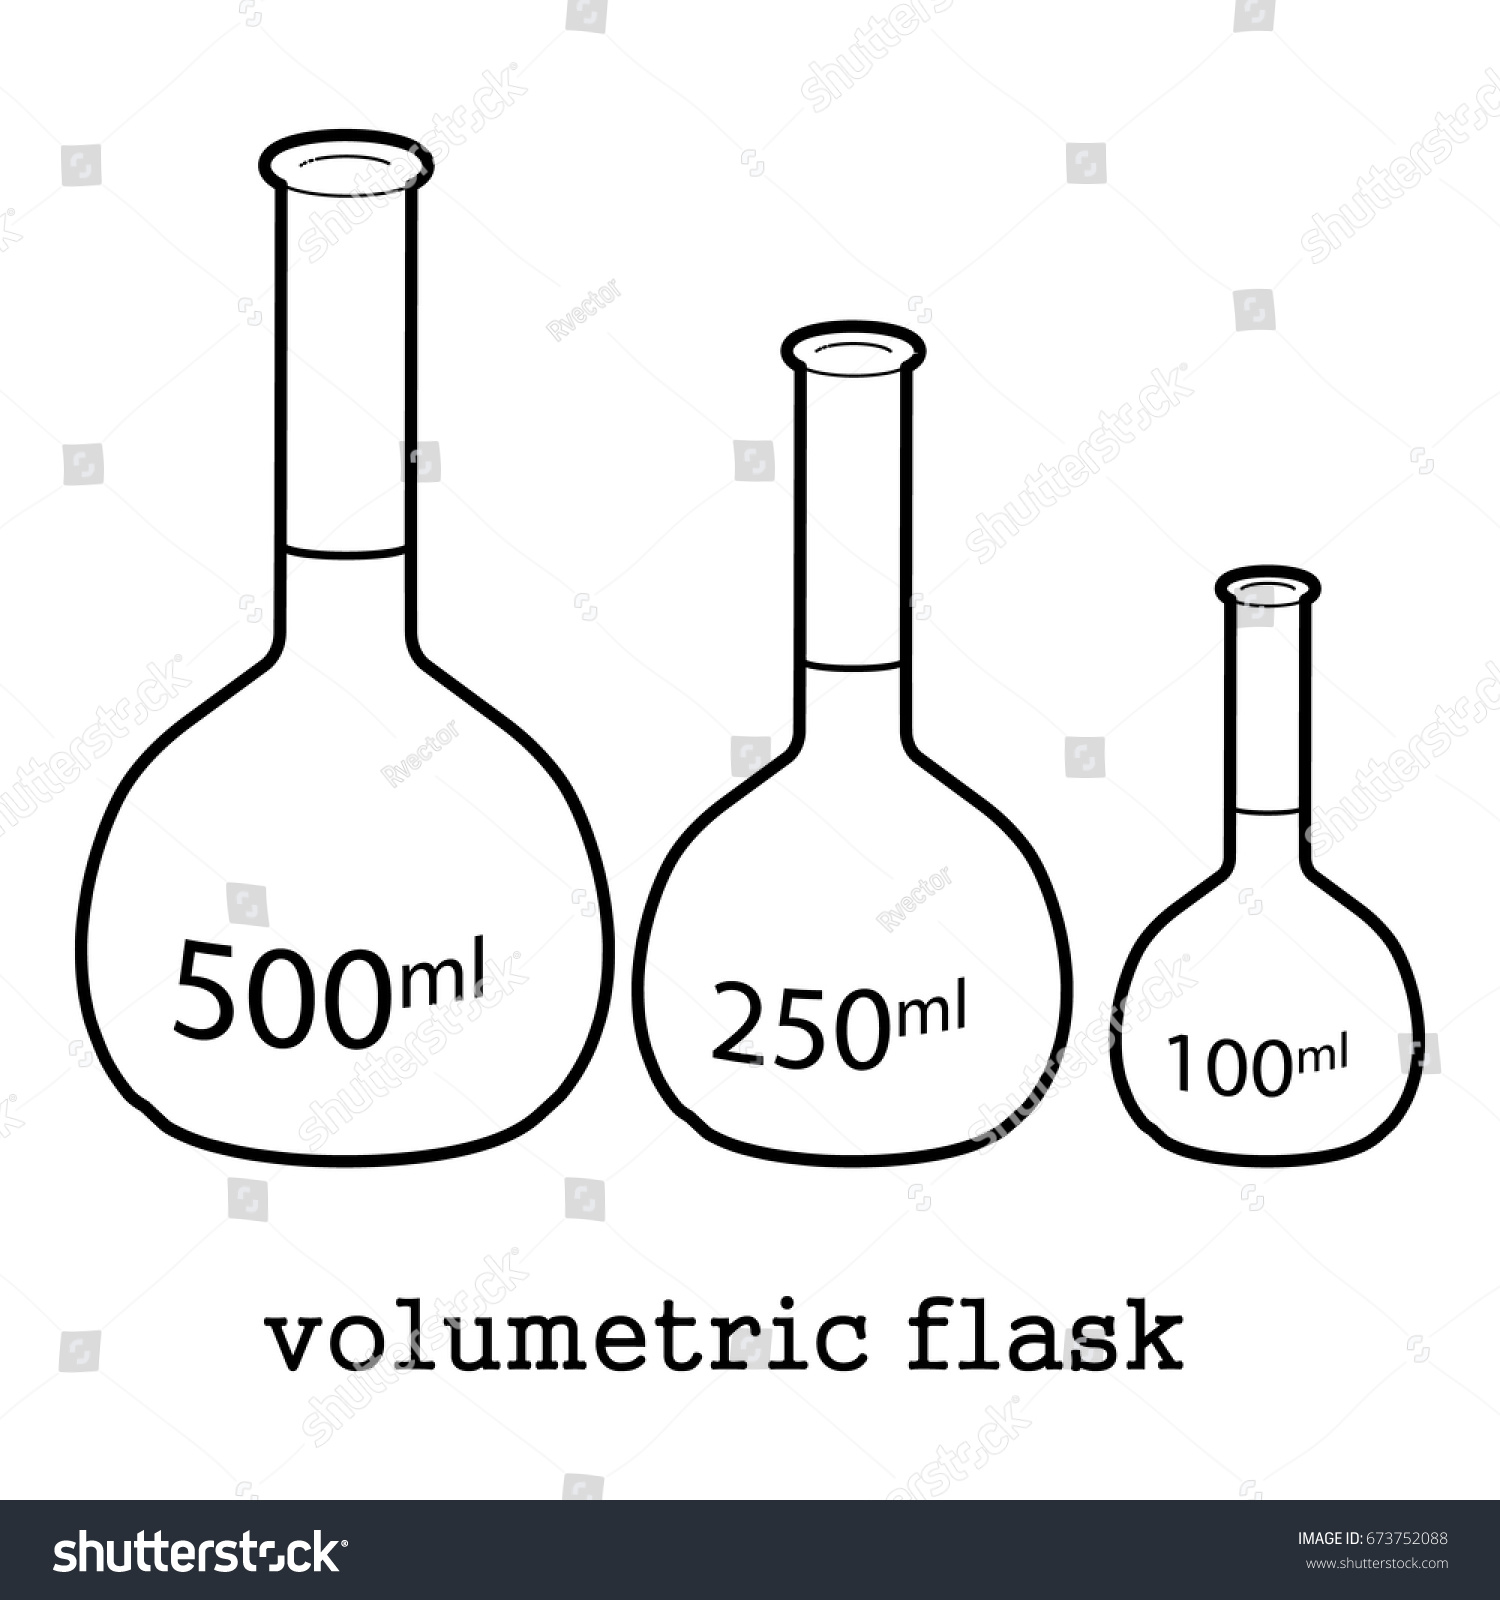 volumetric flask icon outline style isolated stock vector (royalty